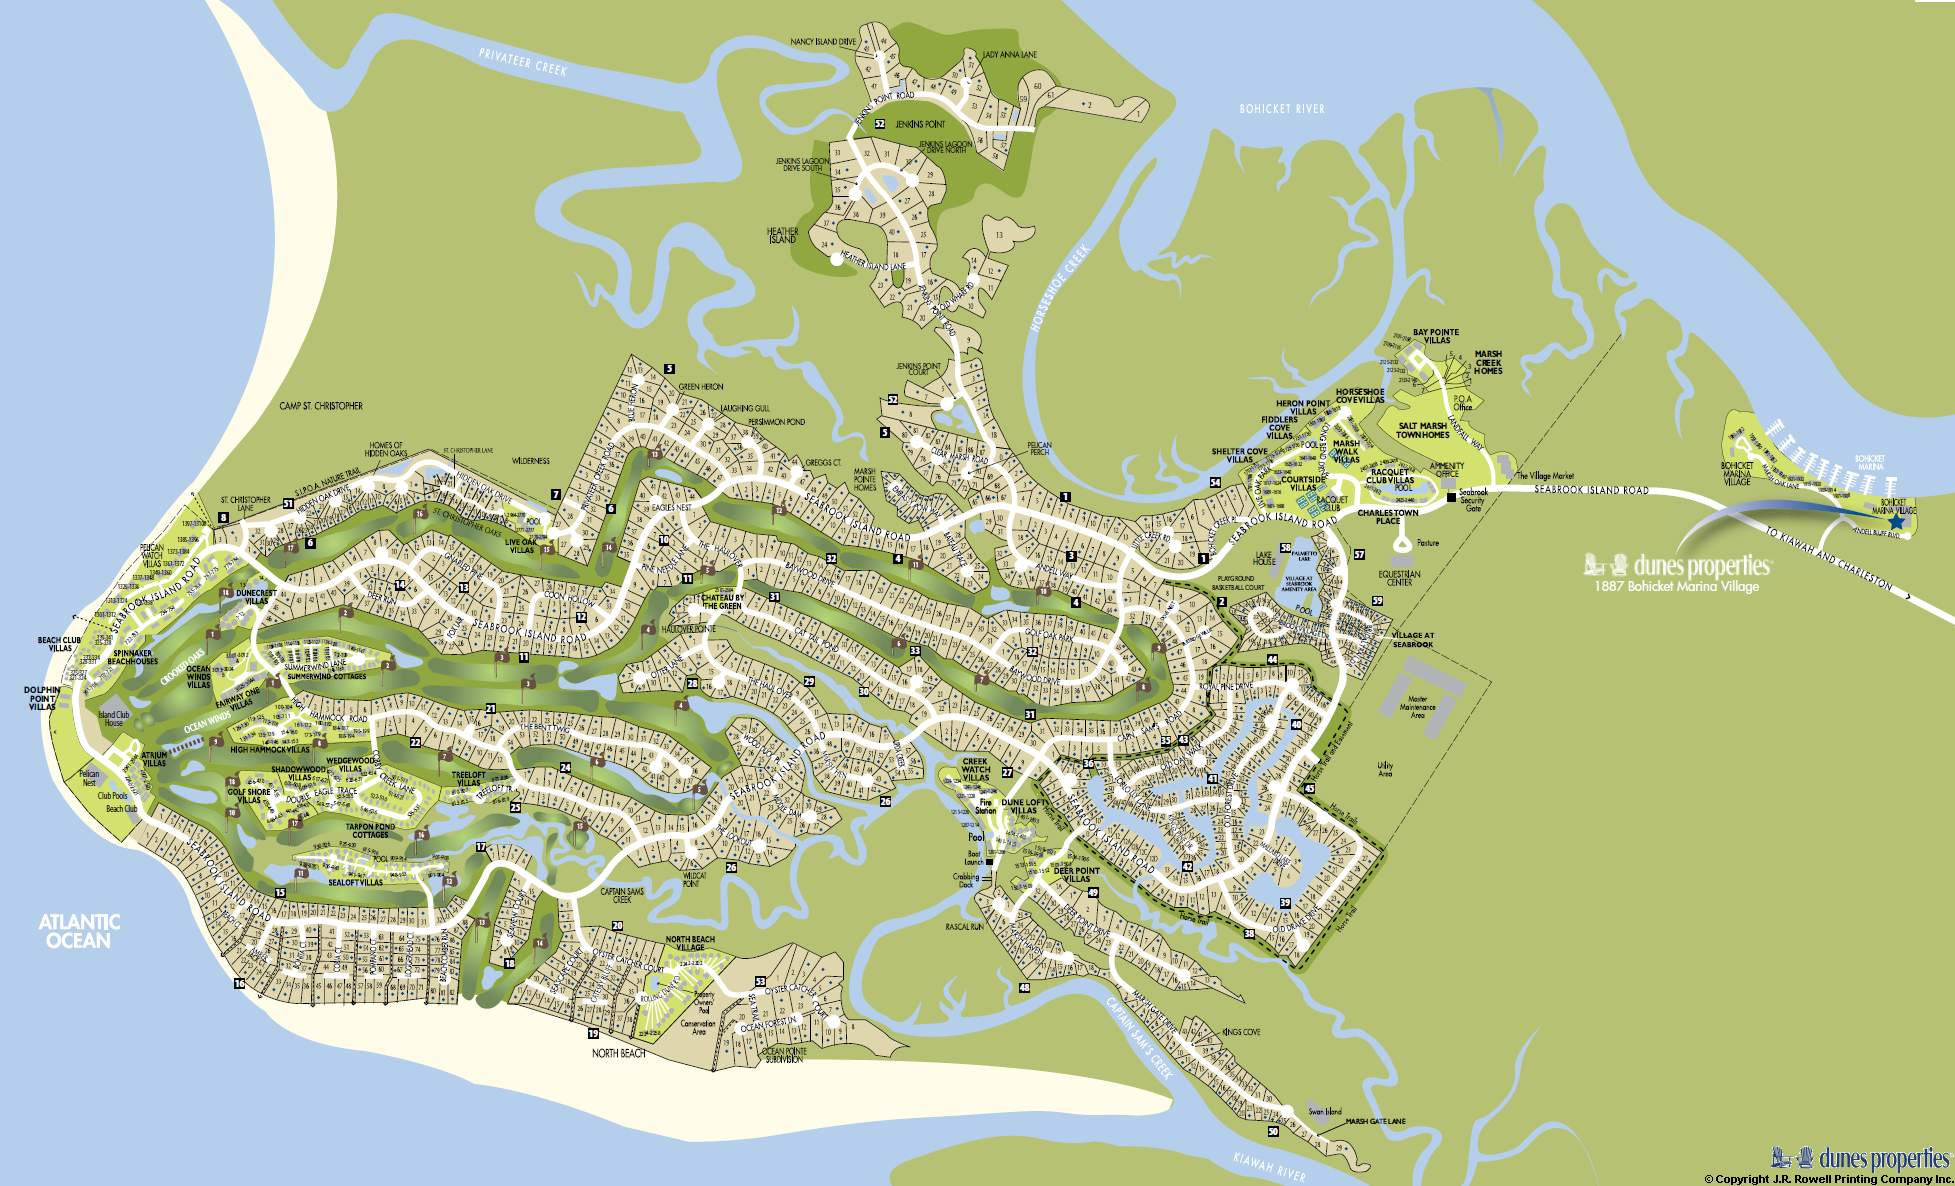 Seabrook Island SC Homes & Land Real Estate For Sale on